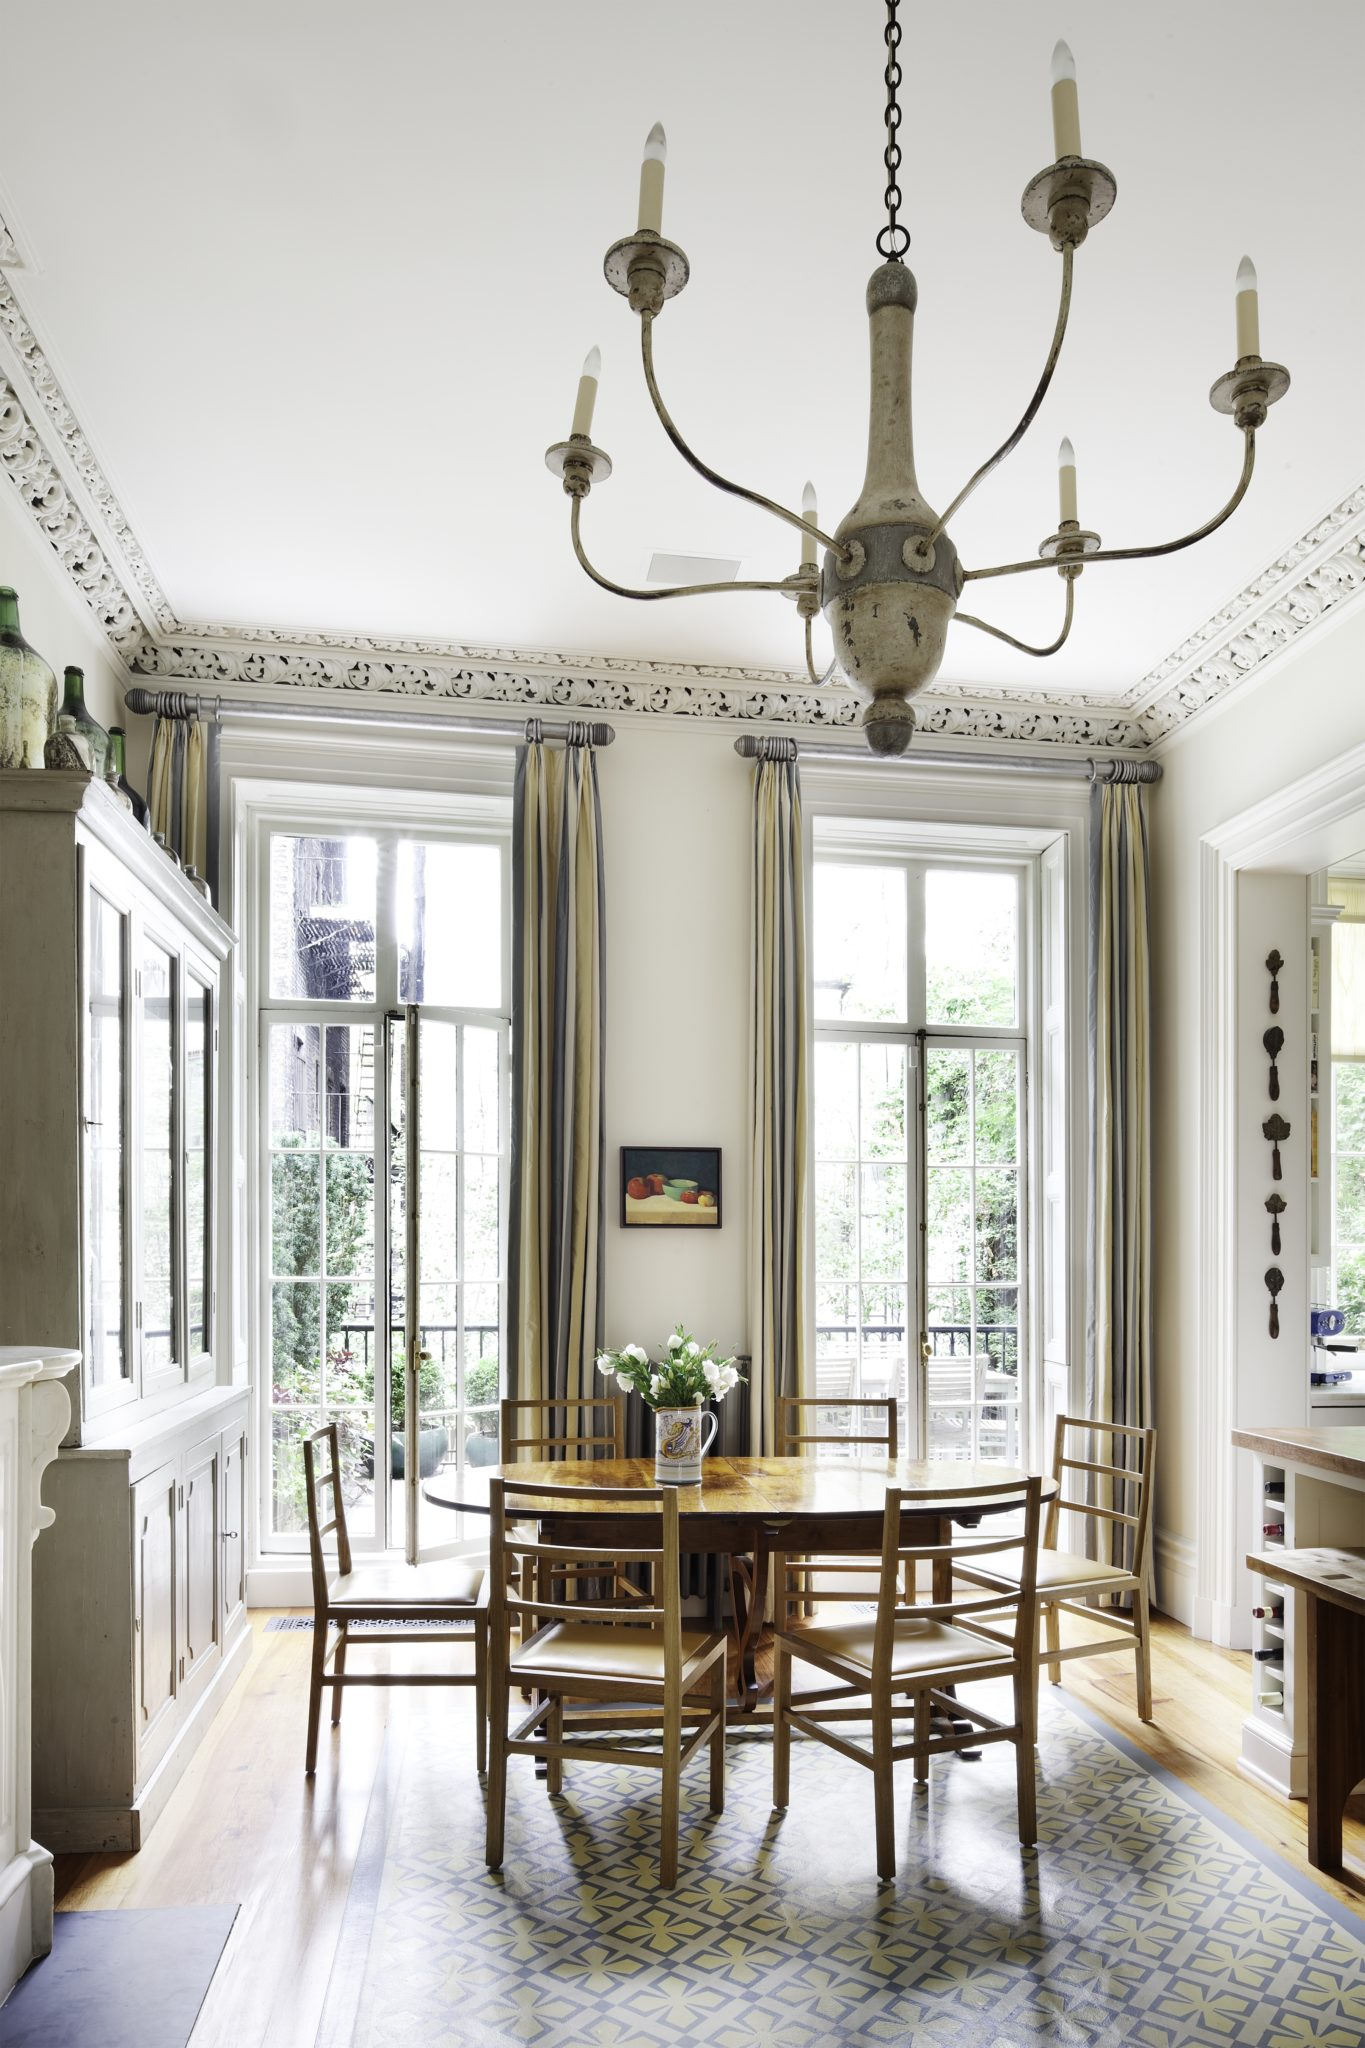 Townhouse dining room with natural light andfloor-to-ceiling windows by Sheila Bridges Design Inc.